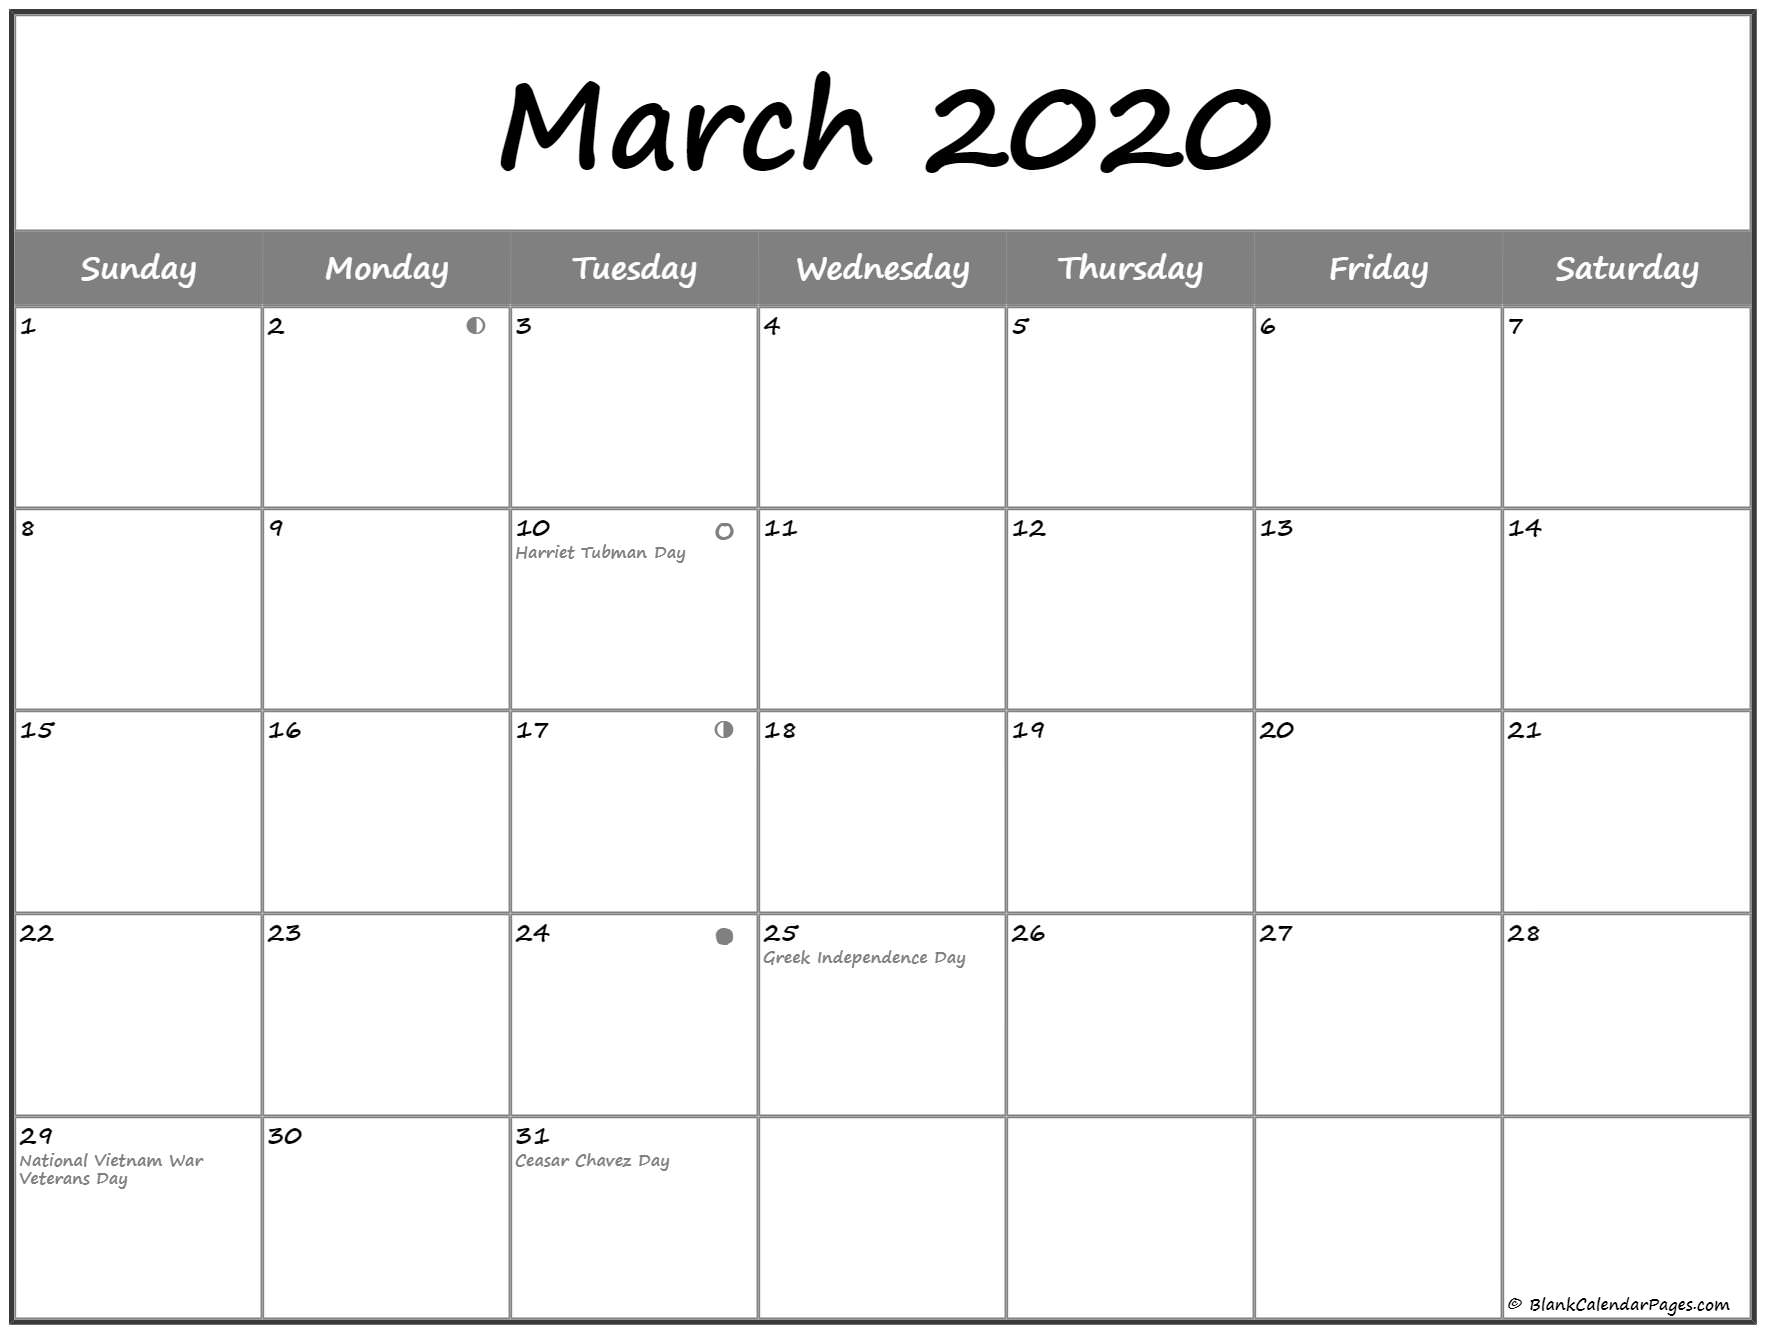 March 2020 Lunar Calendar Template